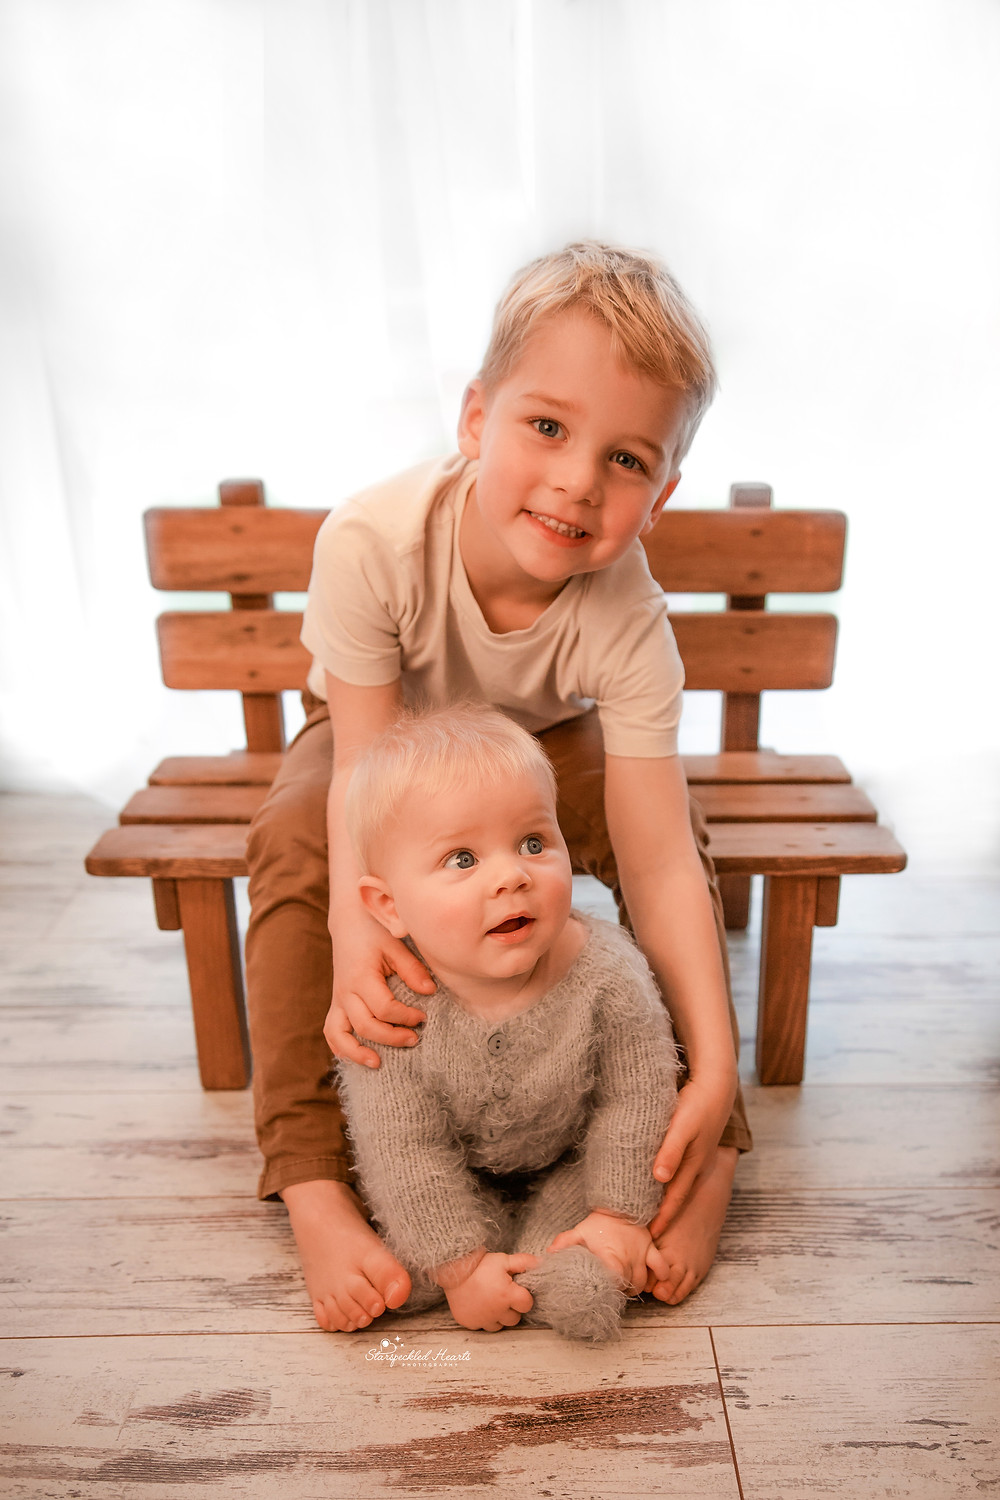 a young boy sitting on a bench with his baby brother sitting between his legs